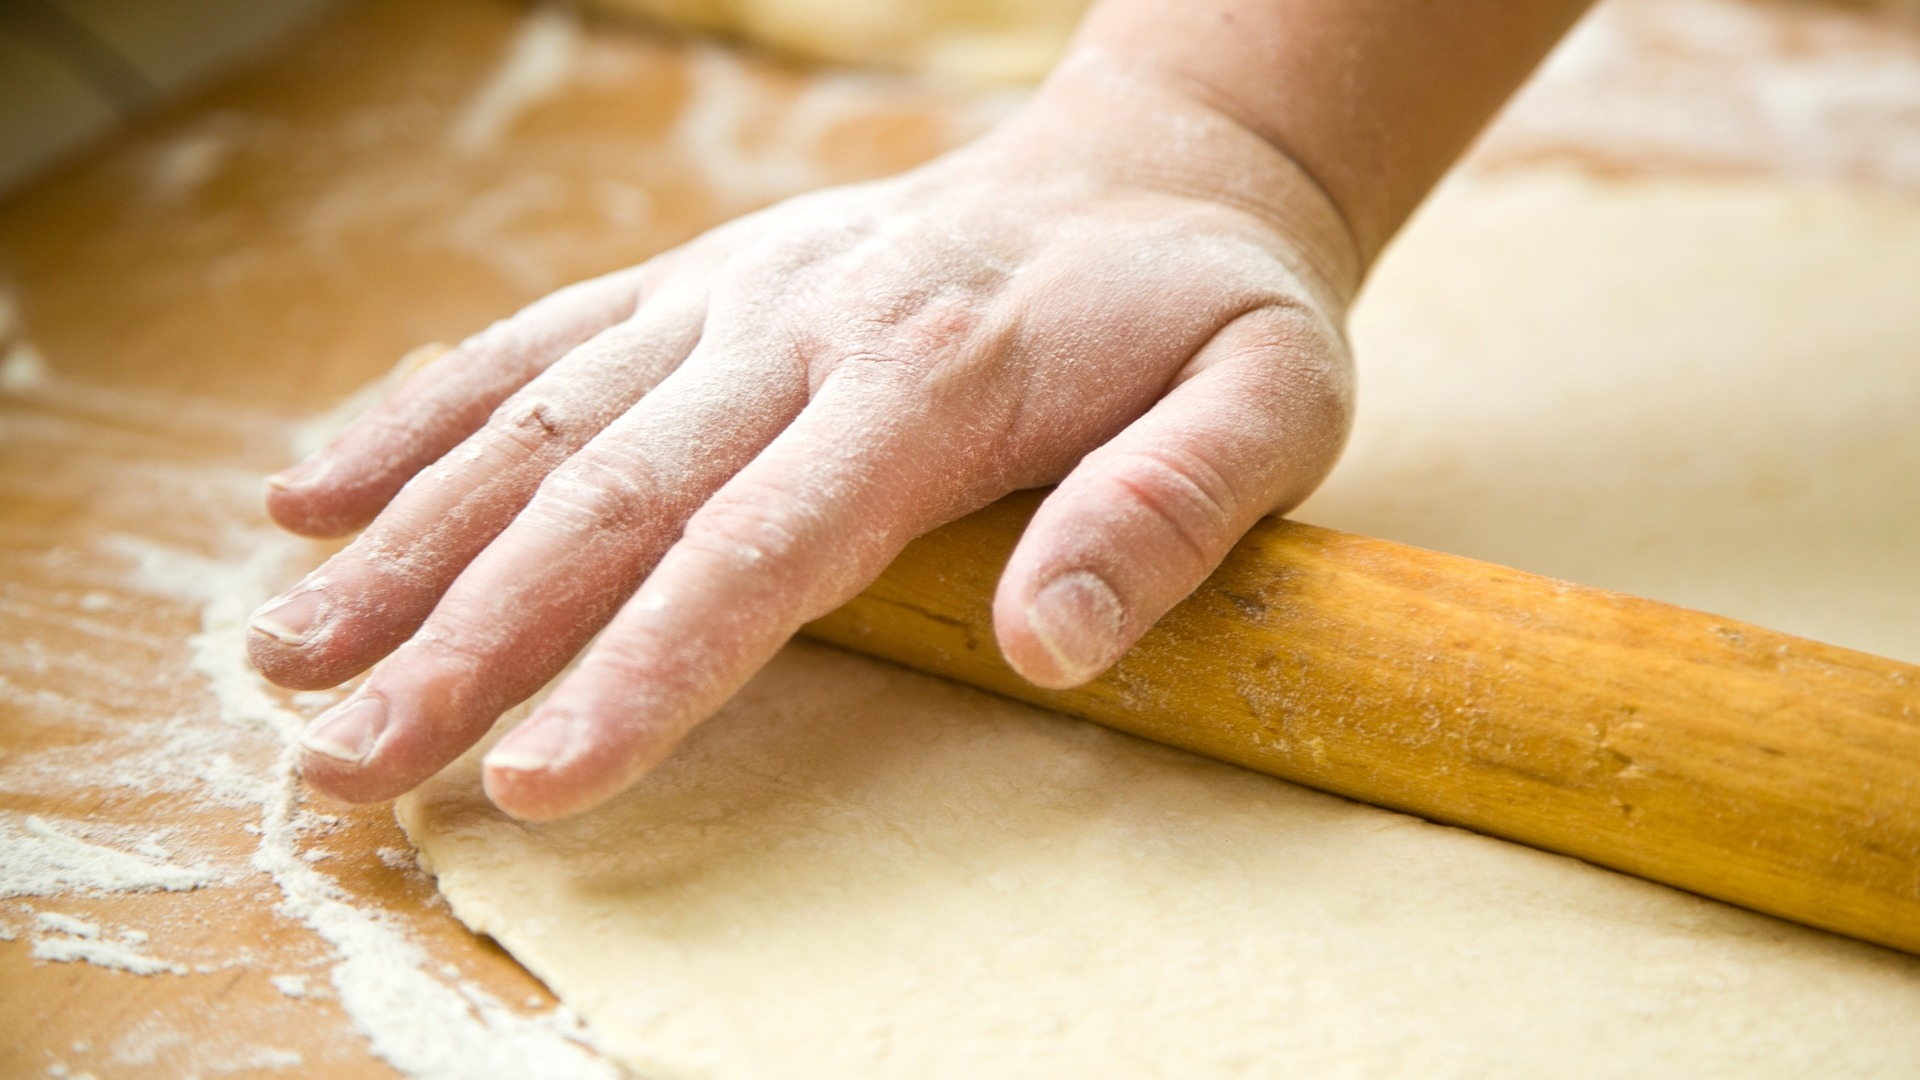 short crust, pastry crust. dough, rolling, pin, pasta, bread